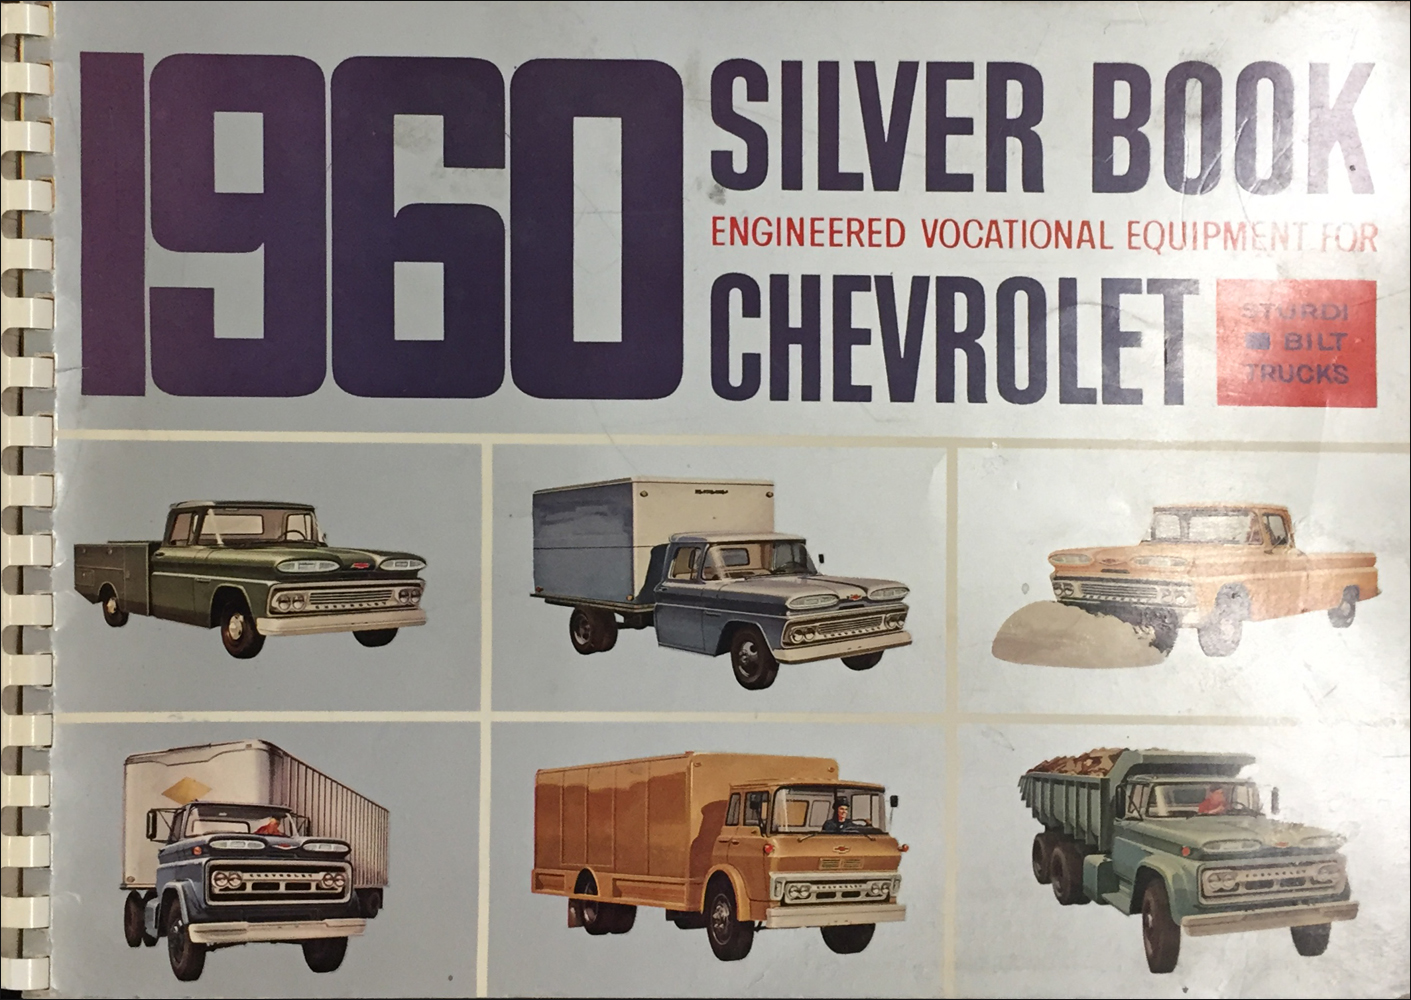 1960 Chevrolet Truck Silver Book Special Equipment Dealer Album